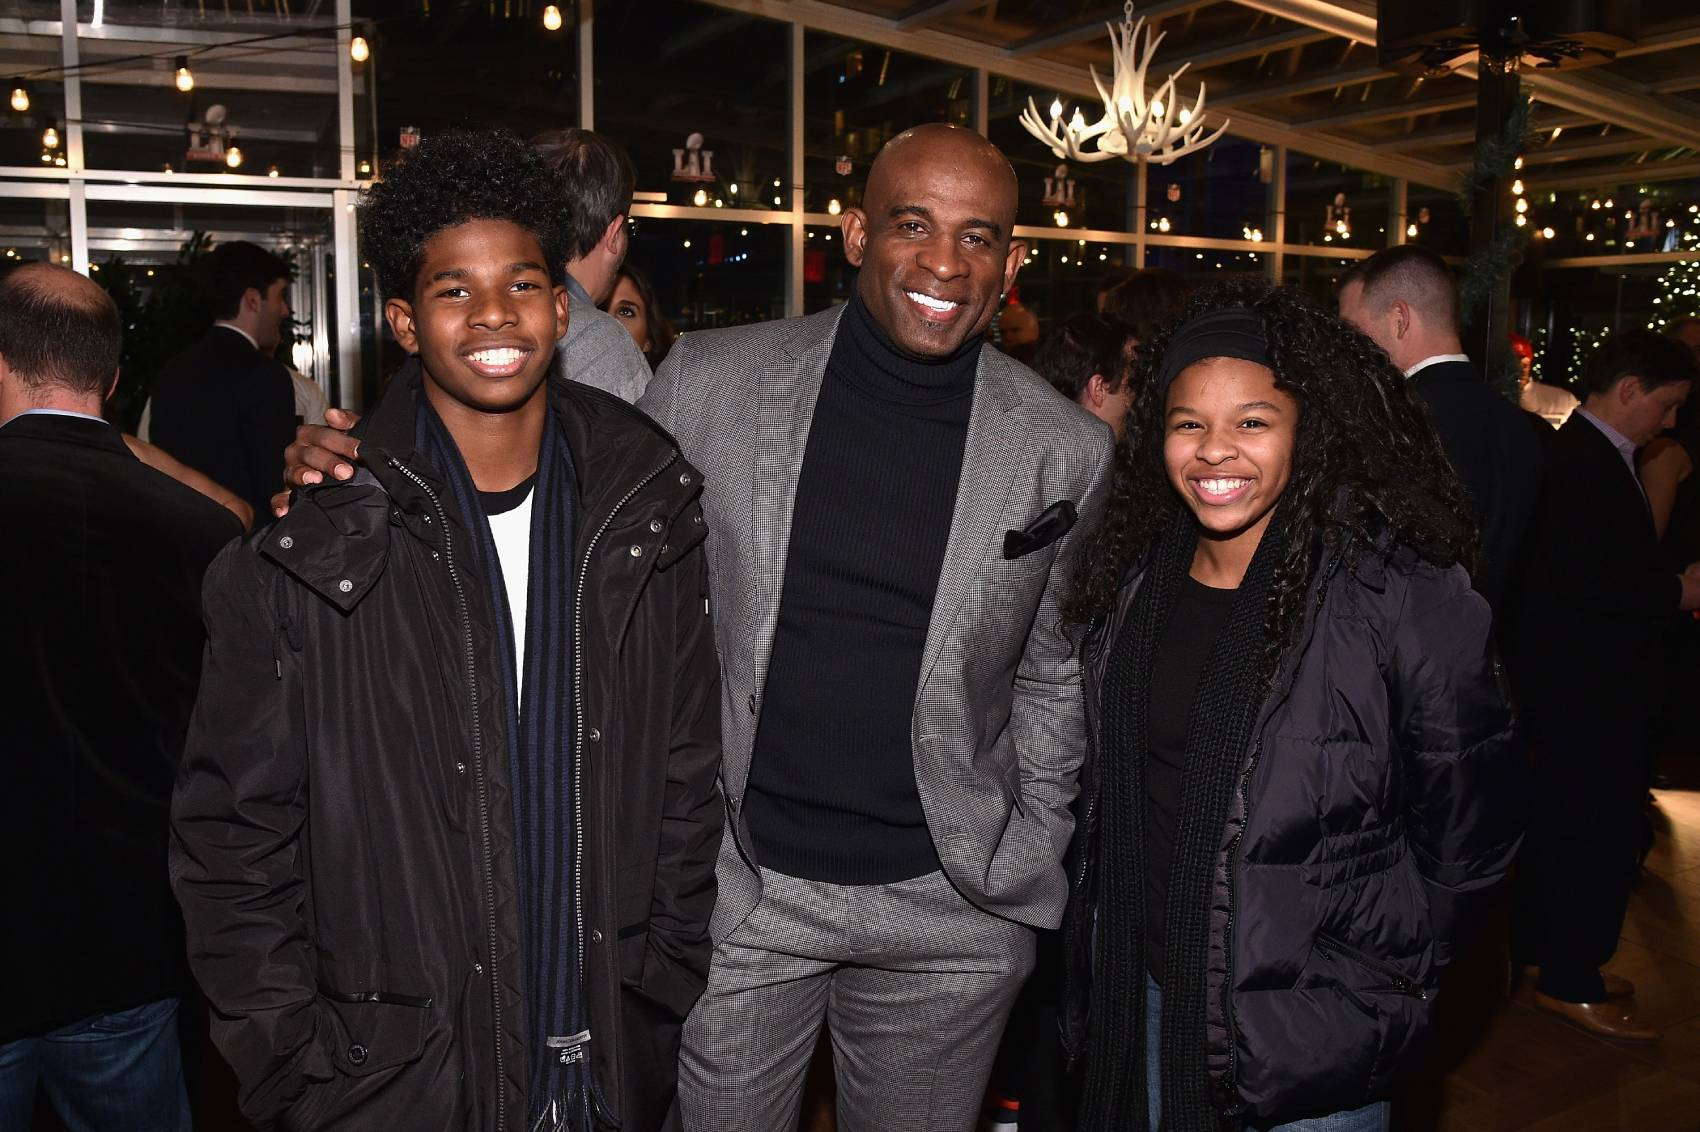 Shedeur Sanders (left) is the son of Pro Football Hall of Fame cornerback Deion Sanders. A high school quarterback, Shedeur committed to Florida Atlantic University on July 13.